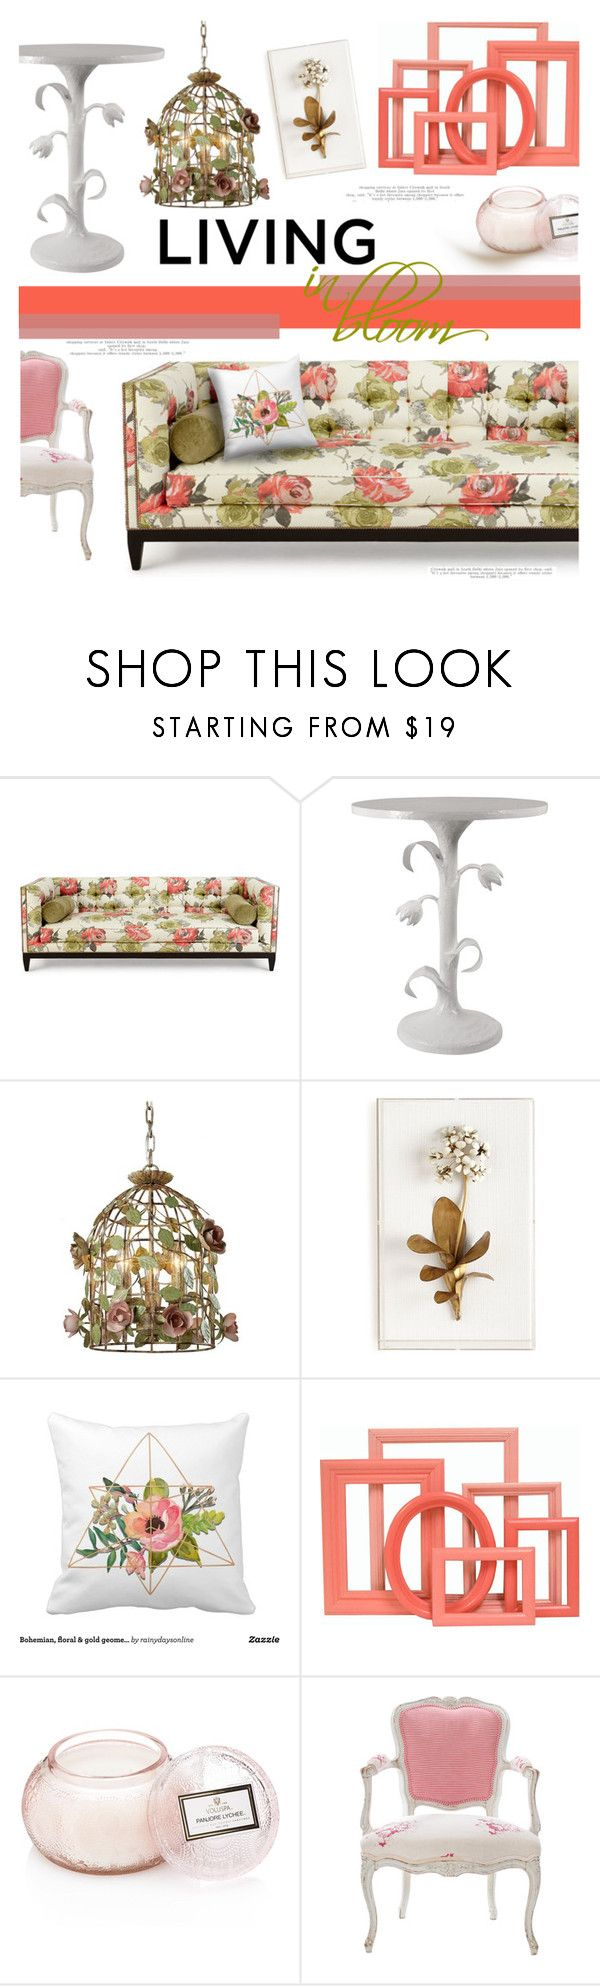 """""""Living in Bloom"""" by stacey-lynne ❤ liked on Polyvore featuring interior, interiors, interior design, home, home decor, interior decorating, Old Hickory Tannery, Tommy Mitchell, Voluspa and Antique"""